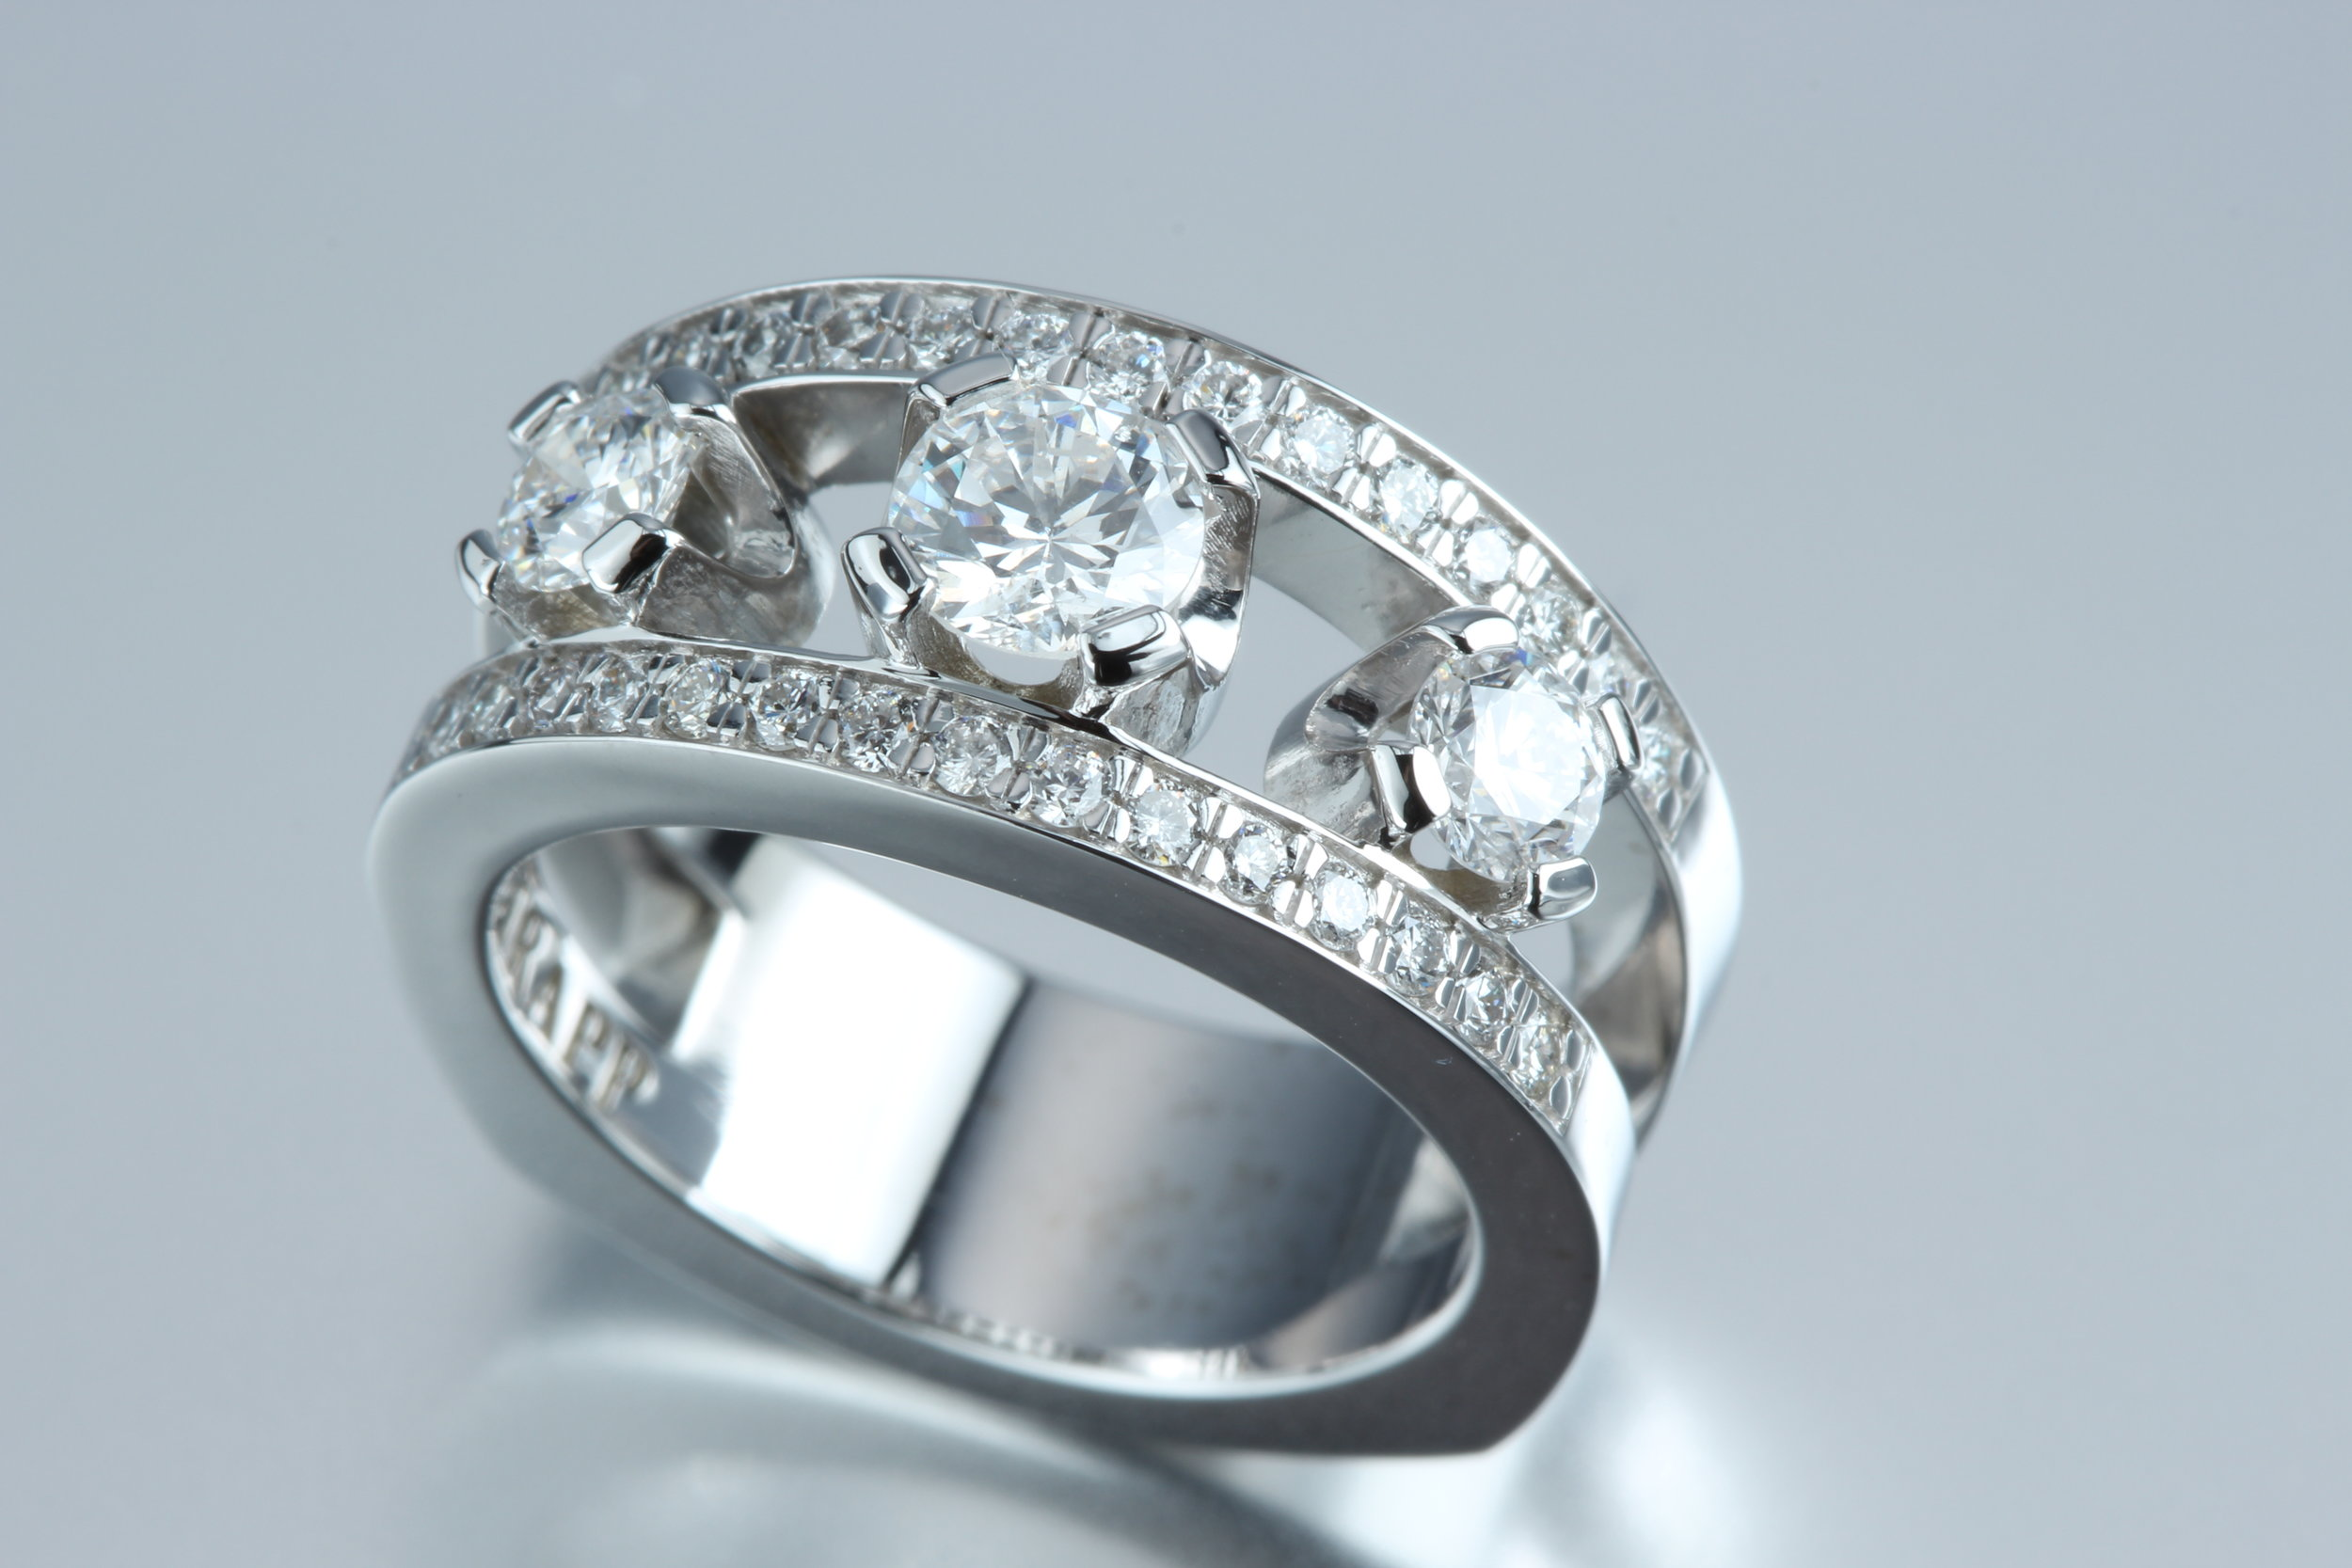 Triple Diamond Ring with 14K White Gold - This triple diamond ring glistens from all angles. It is made with all genuine diamonds and 14k white gold.